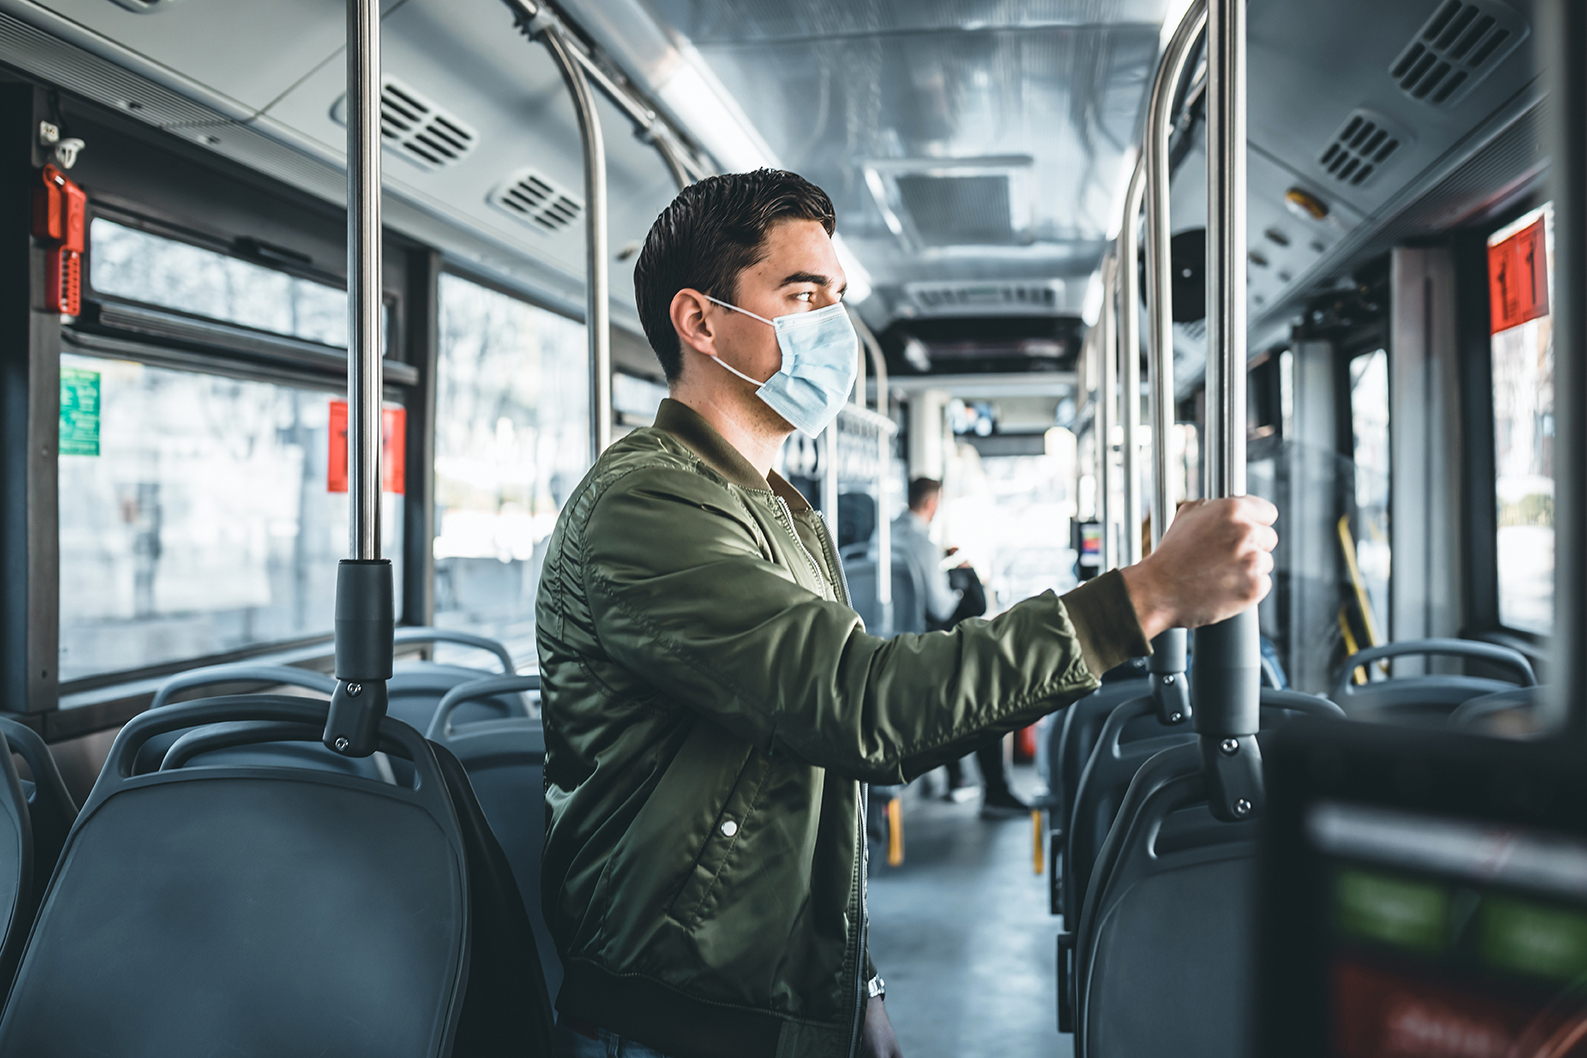 Image of  man in bus wearing medical face mask to protect corona virus Covid-19 virus, pollution, face masks traveling during global health emergency, bird flu, respiratory problem, viral pneumonia, SARS, illnesses, quarantine and diseases